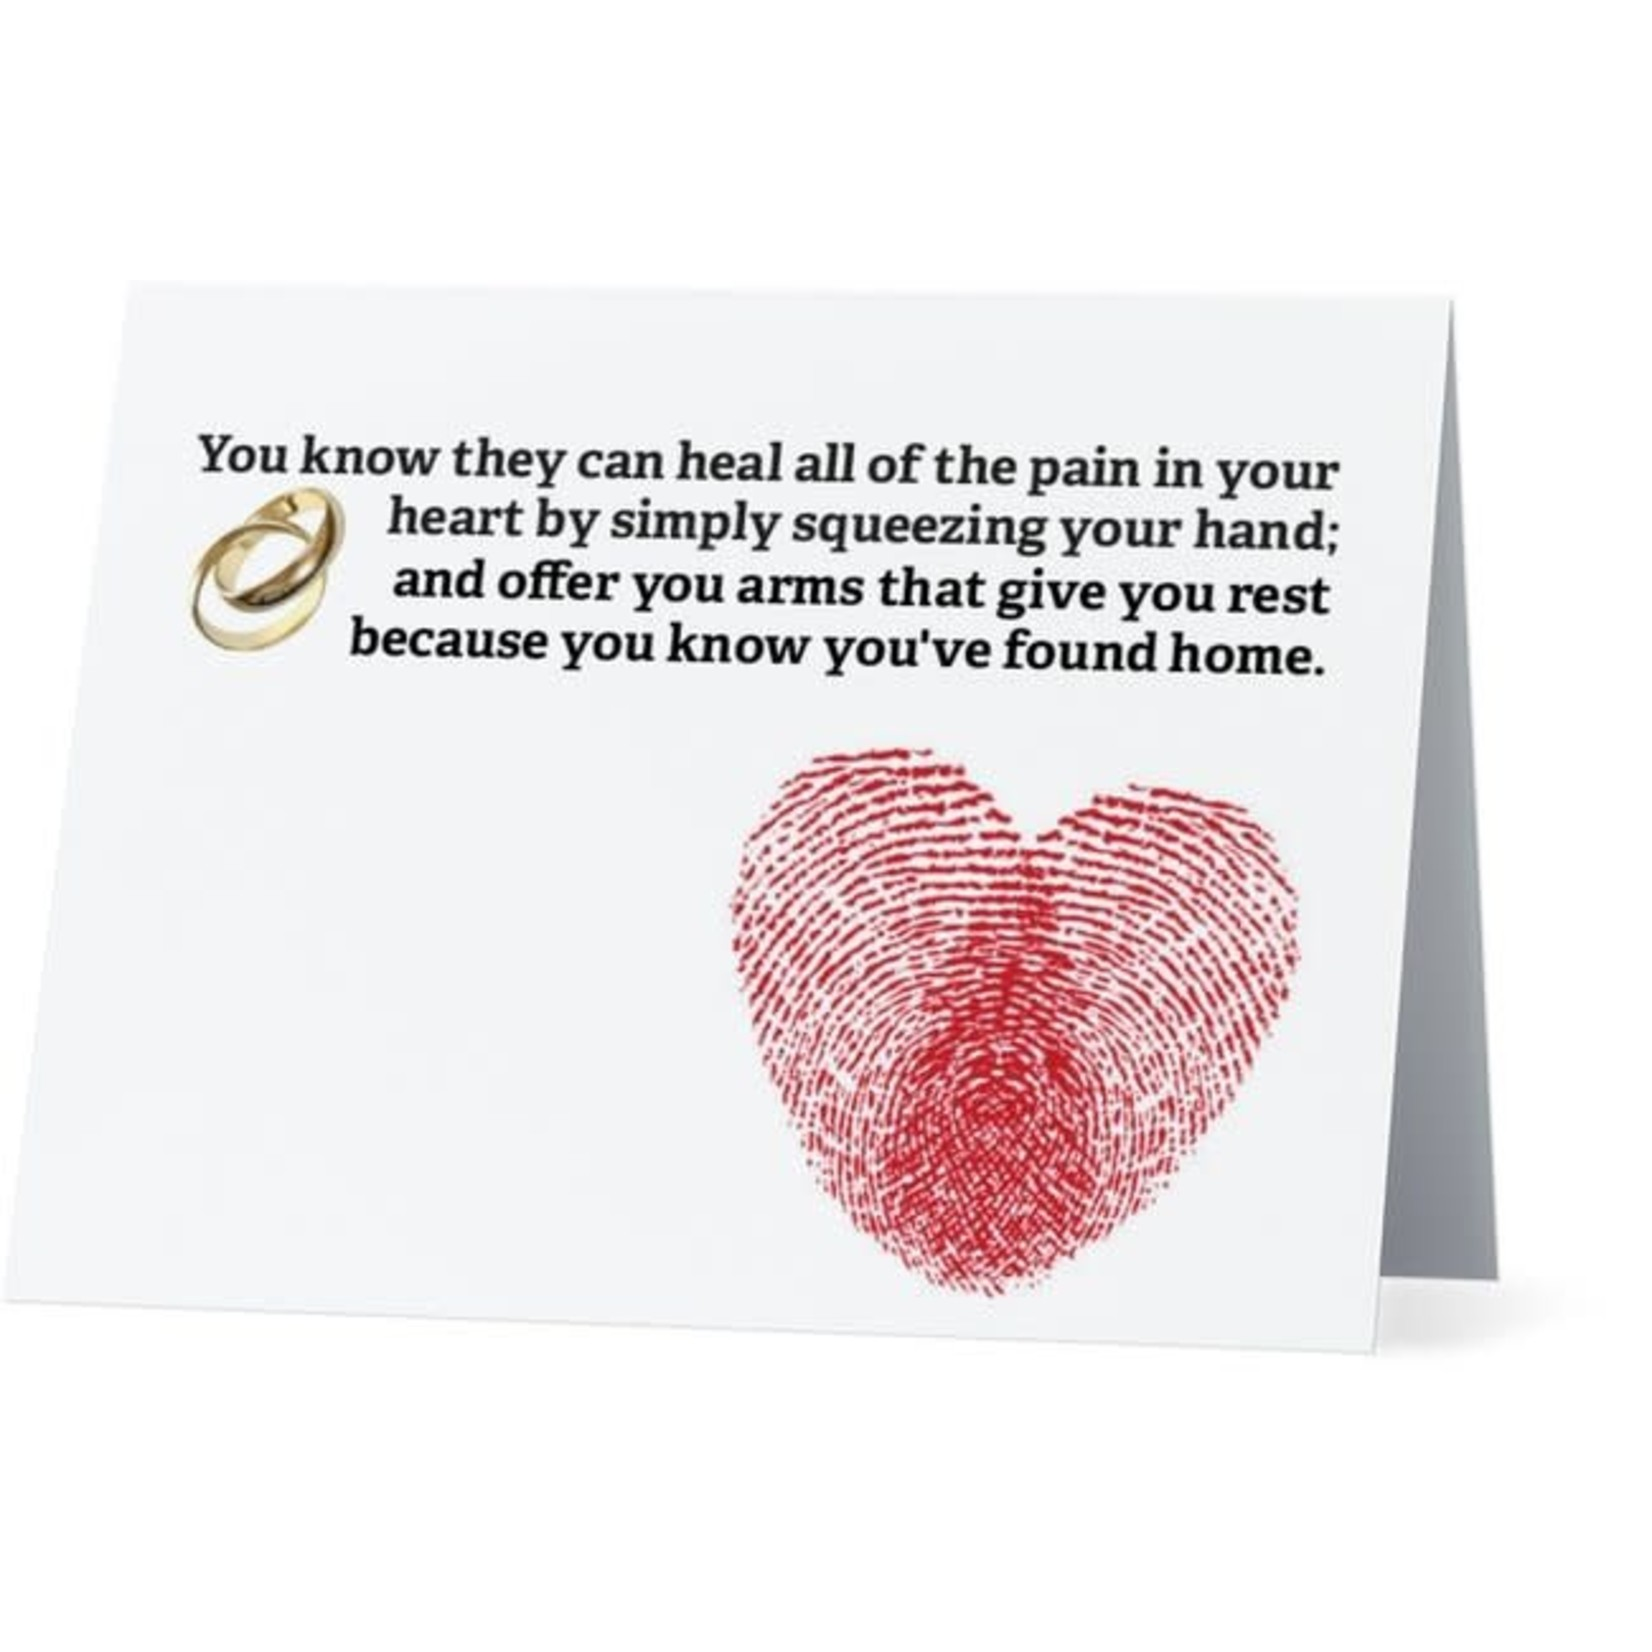 Bad Annie's Card #011 - Heal All Of The Pain In Your Heart